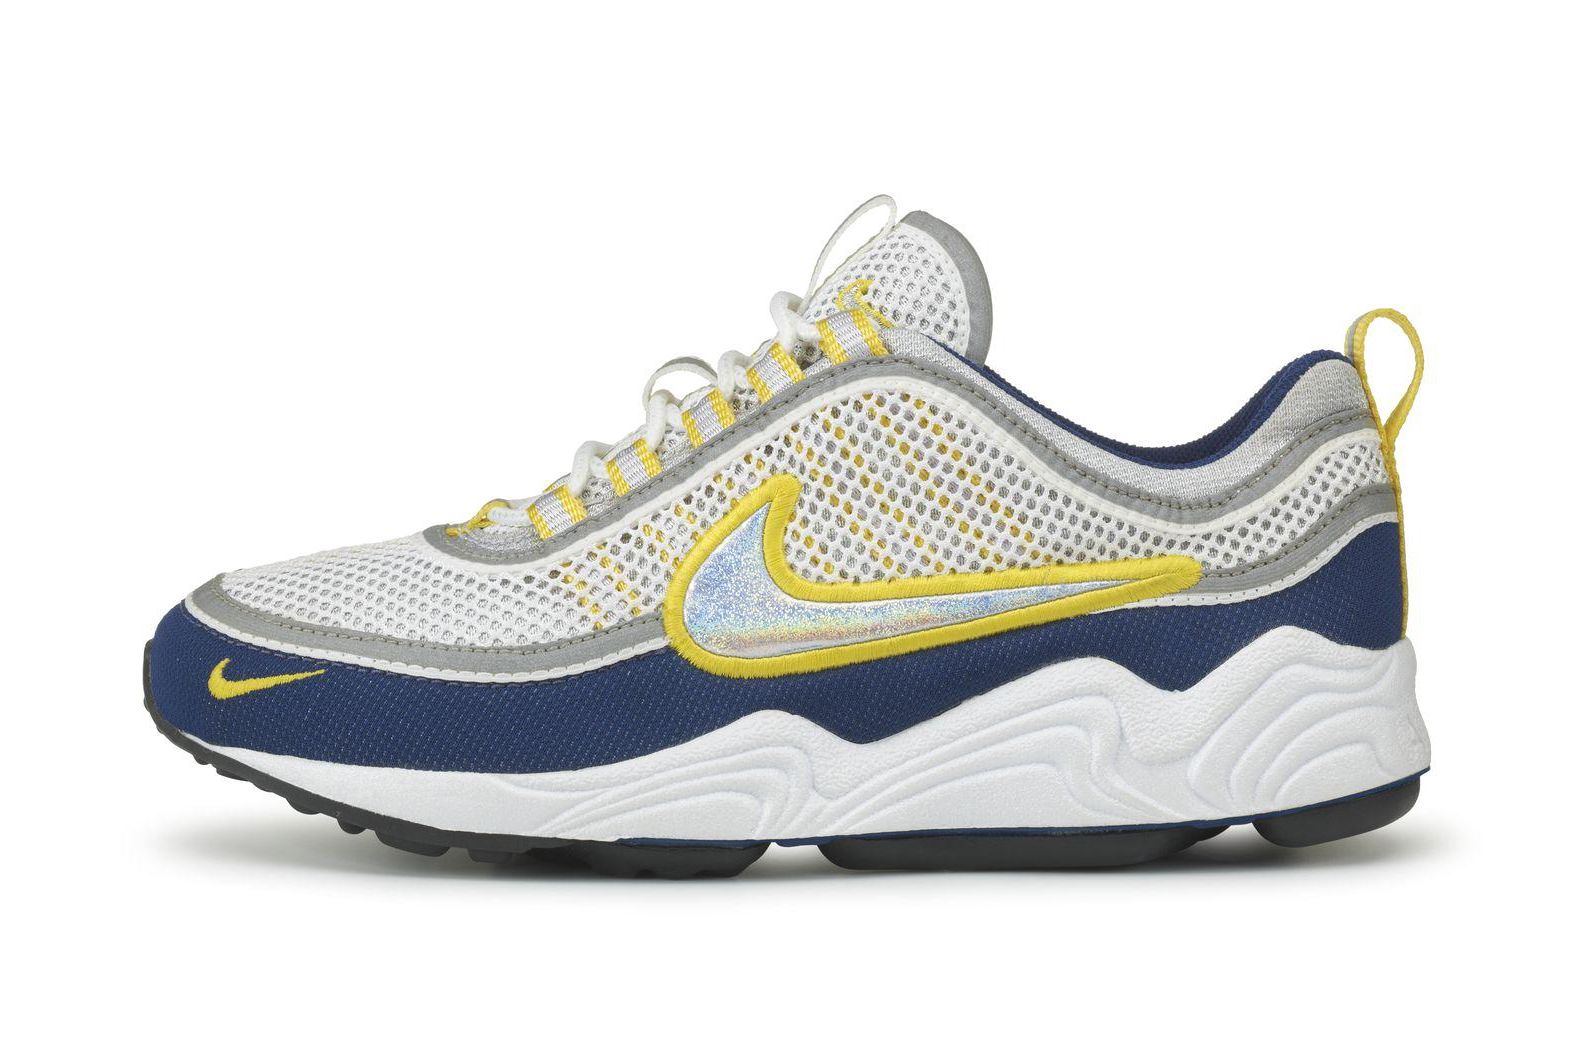 The Evolution of Swoosh's Zoom Air Category #thatdope #sneakers #luxury #dope #fashion #trending